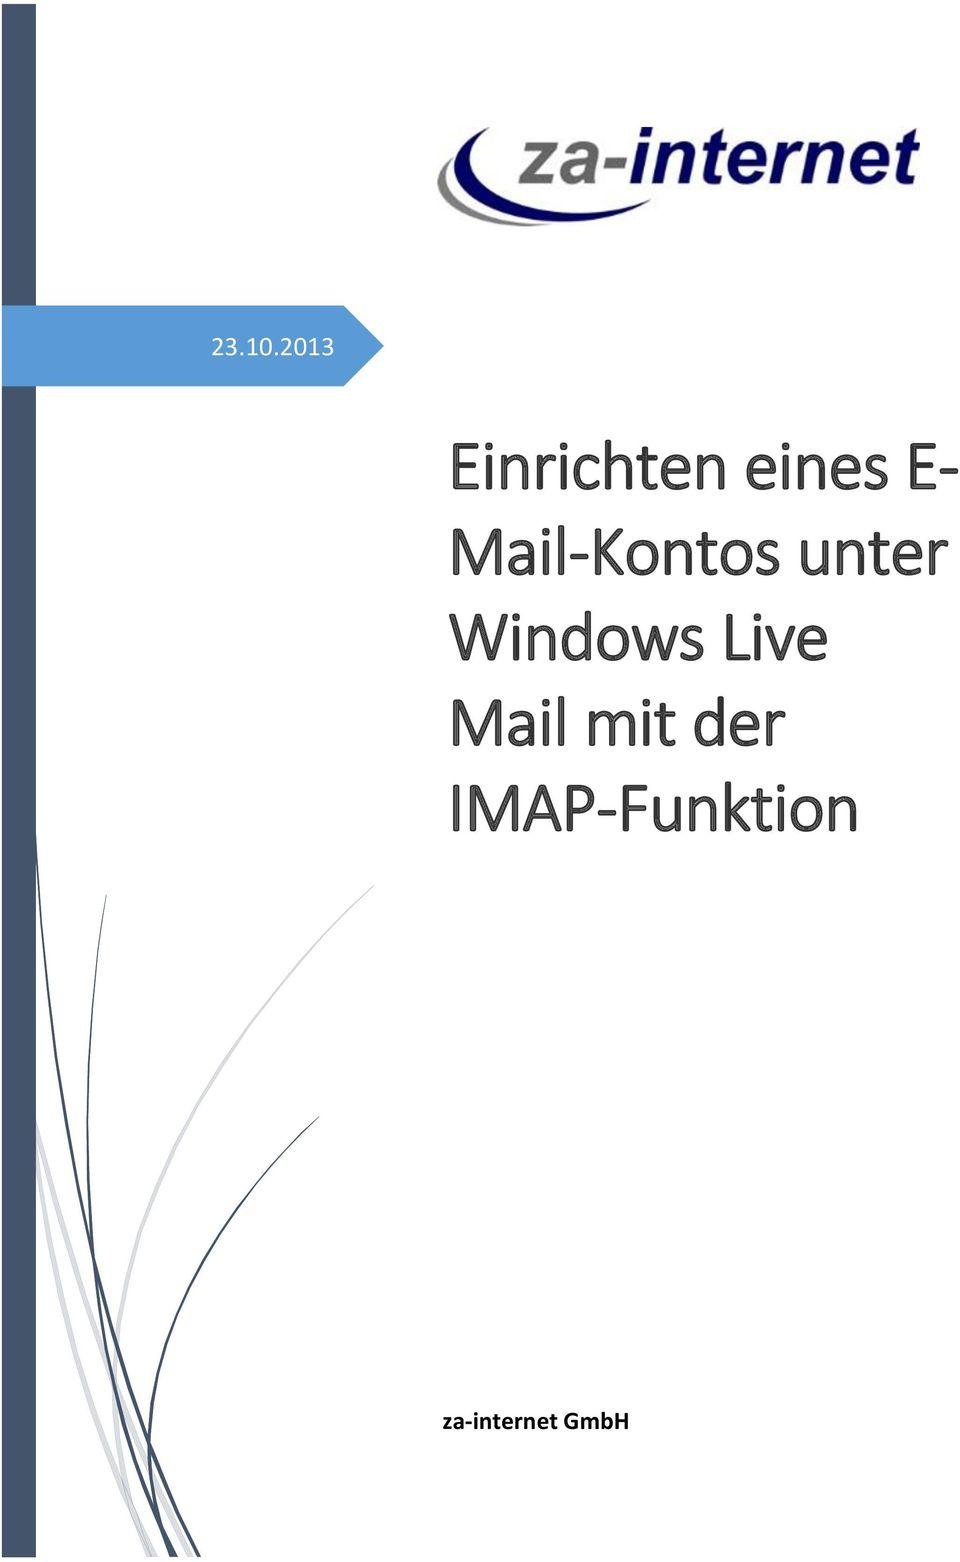 Mail-Kontos unter Windows